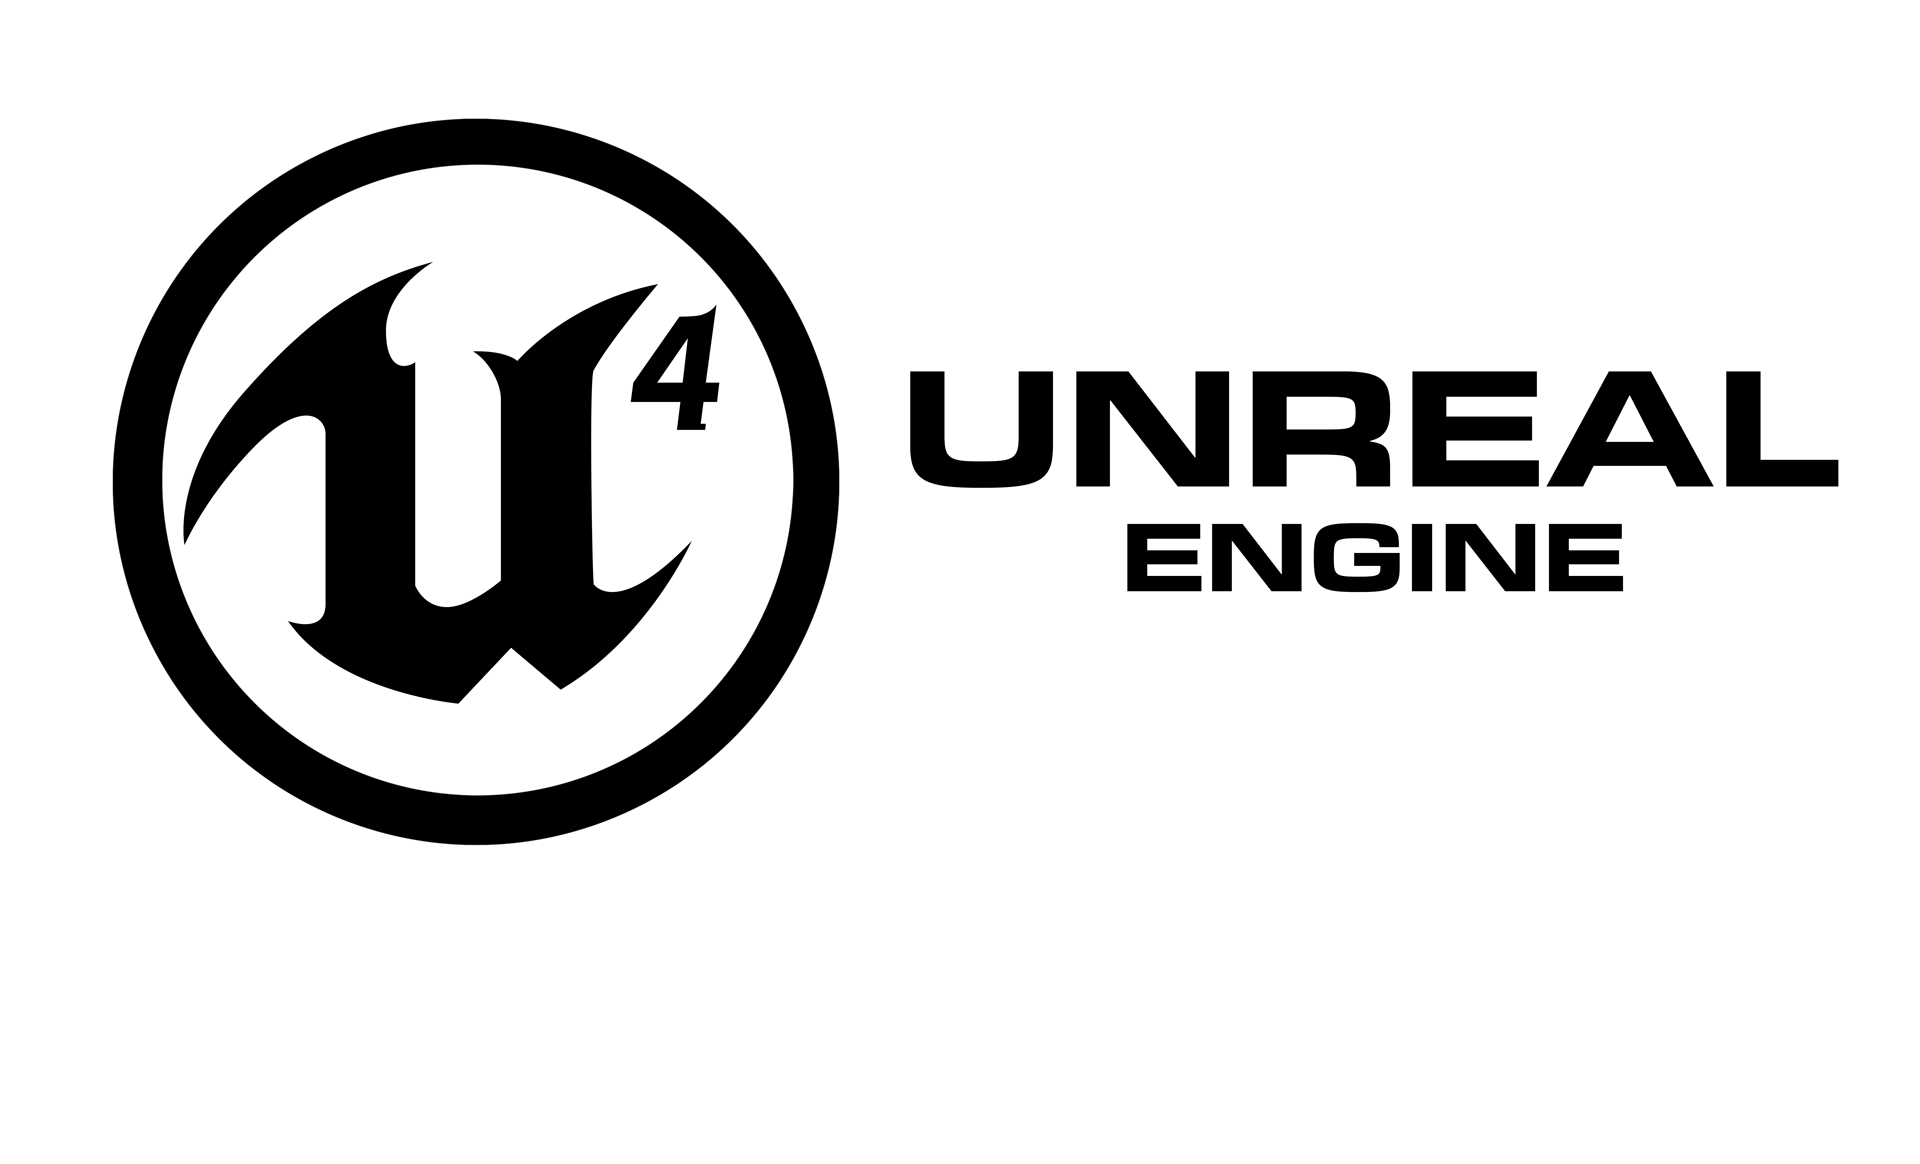 Unreal Engine Update Brings Native Support Arkit Arcore Steamvr Support Mac additionally Automotive Acronyms further 7v171 2002 Dodge Ram 1500 4x4 Crank No Start Problem further Web further Mos Transistor Schematic. on engine driver